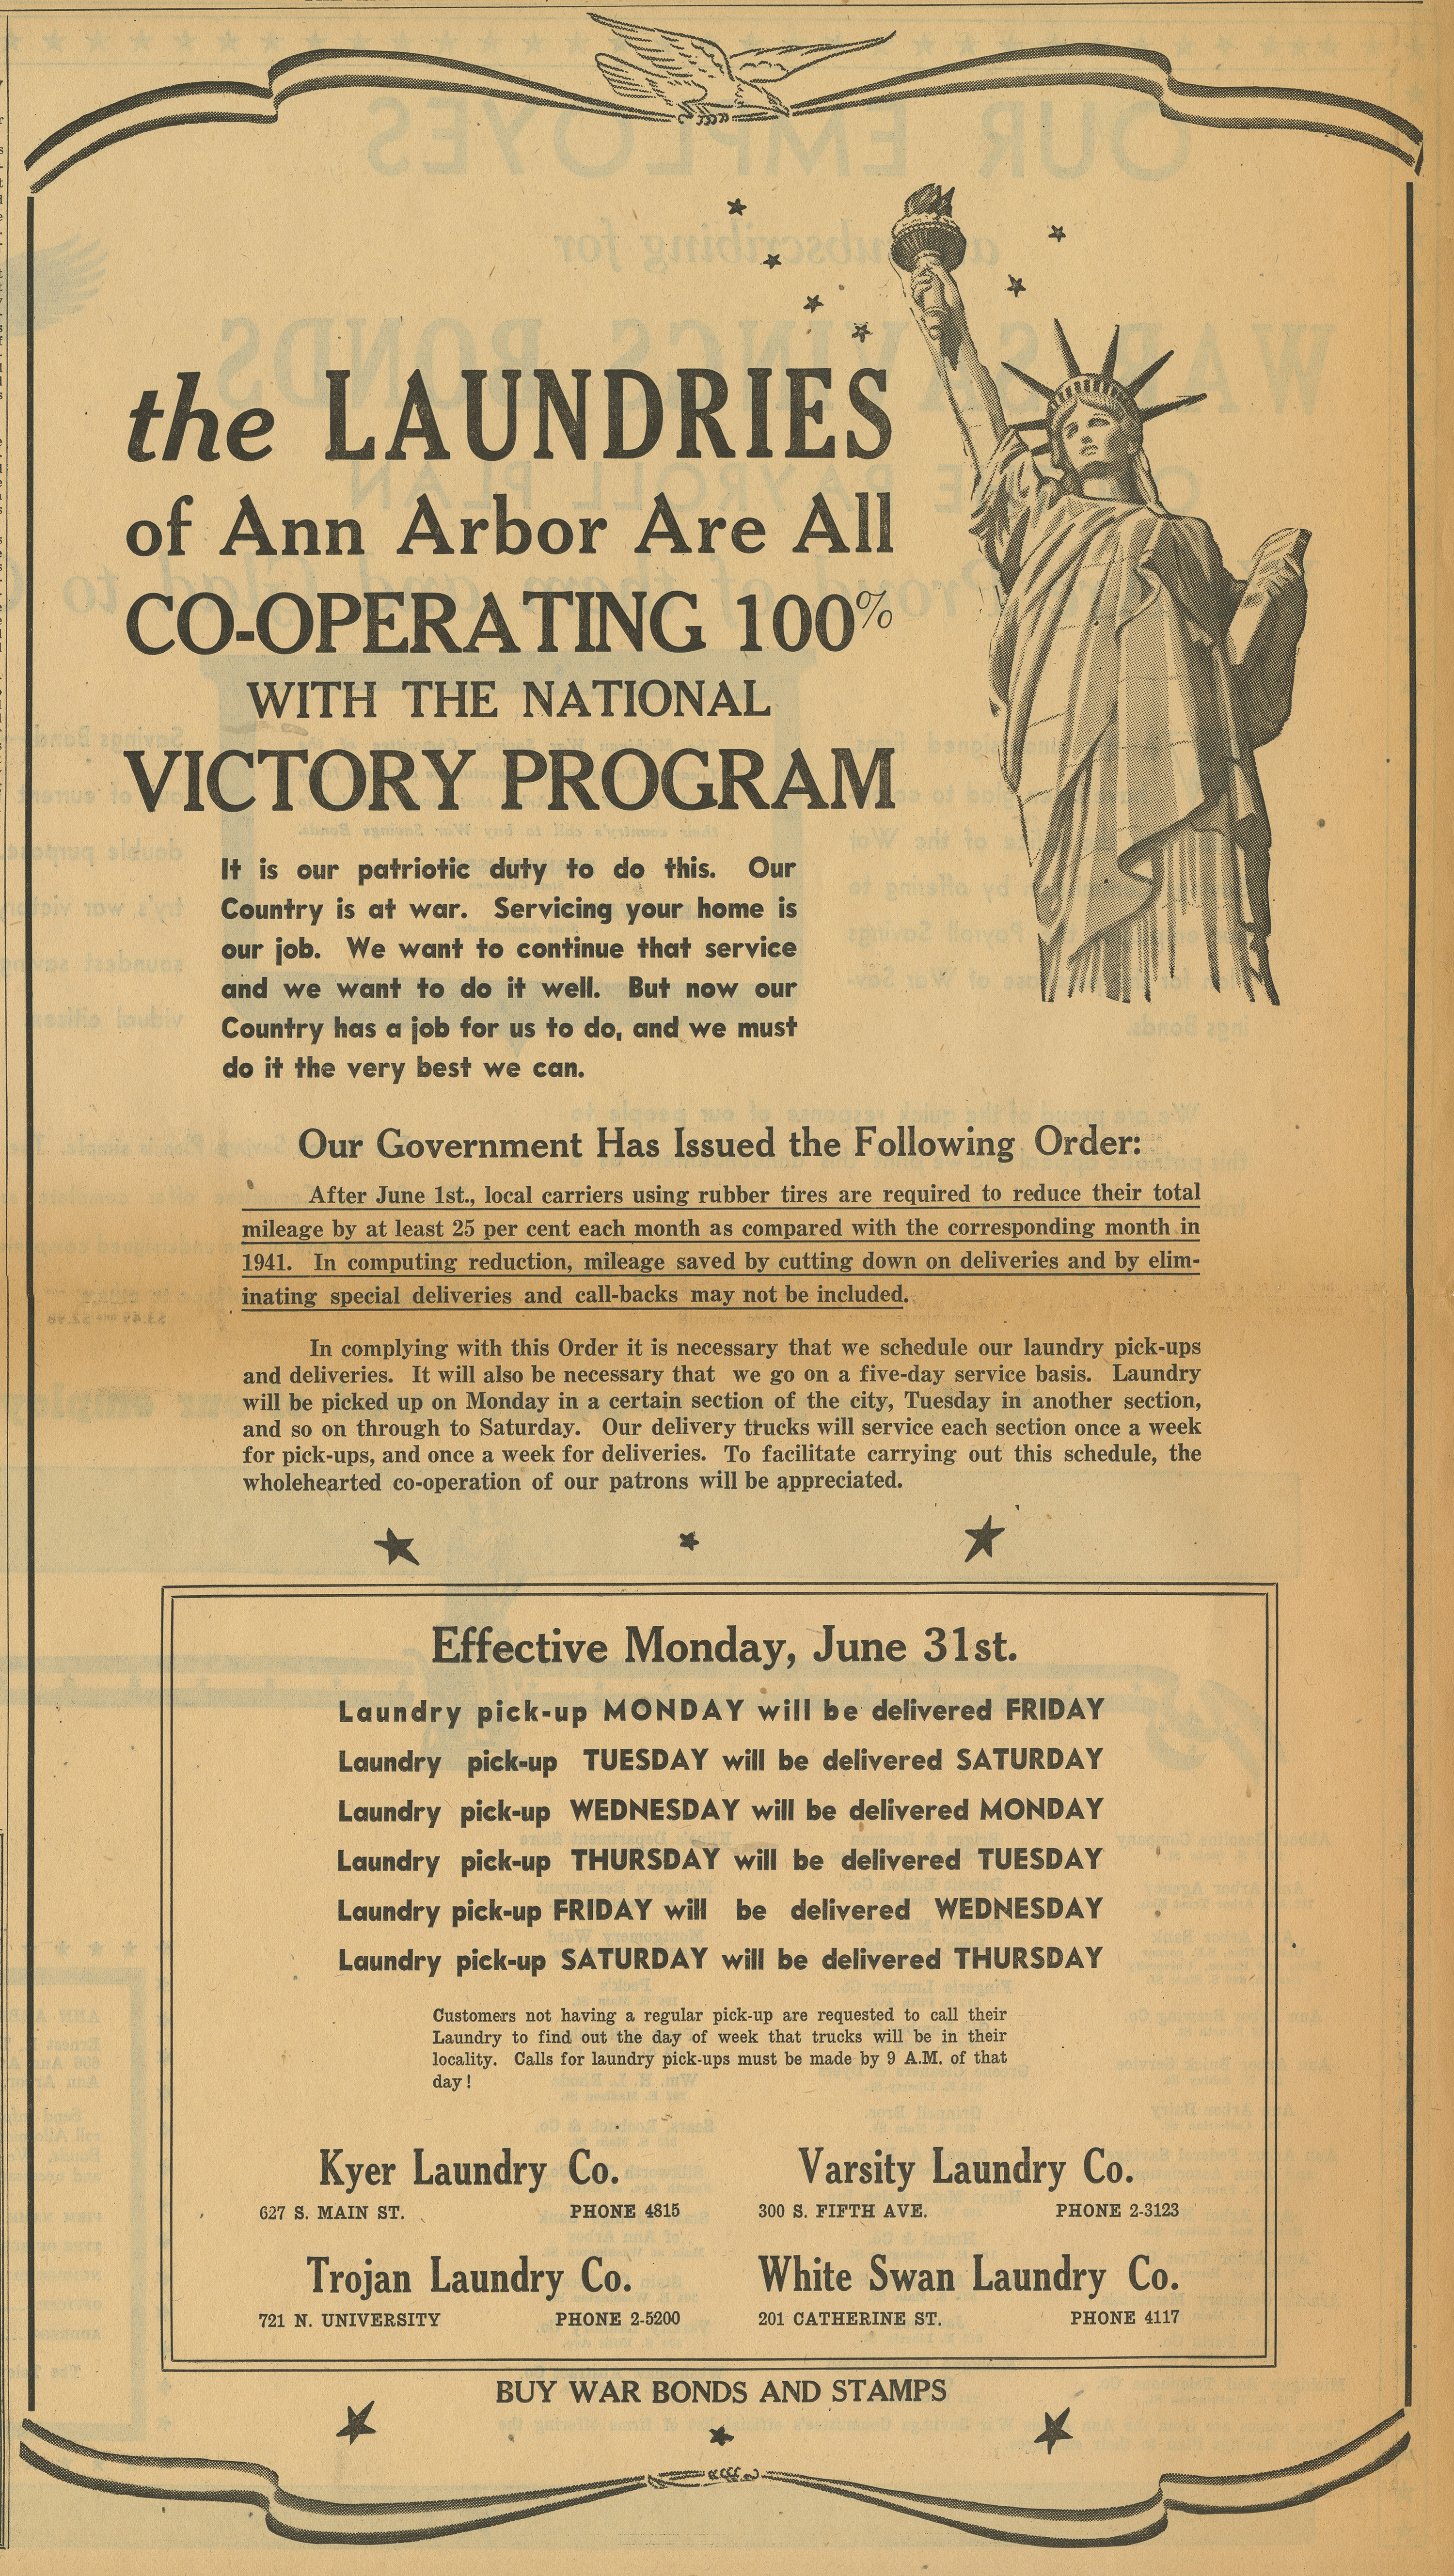 The Laundries of Ann Arbor Are All Co-operating 100% with the National Victory Program - Advertisement image